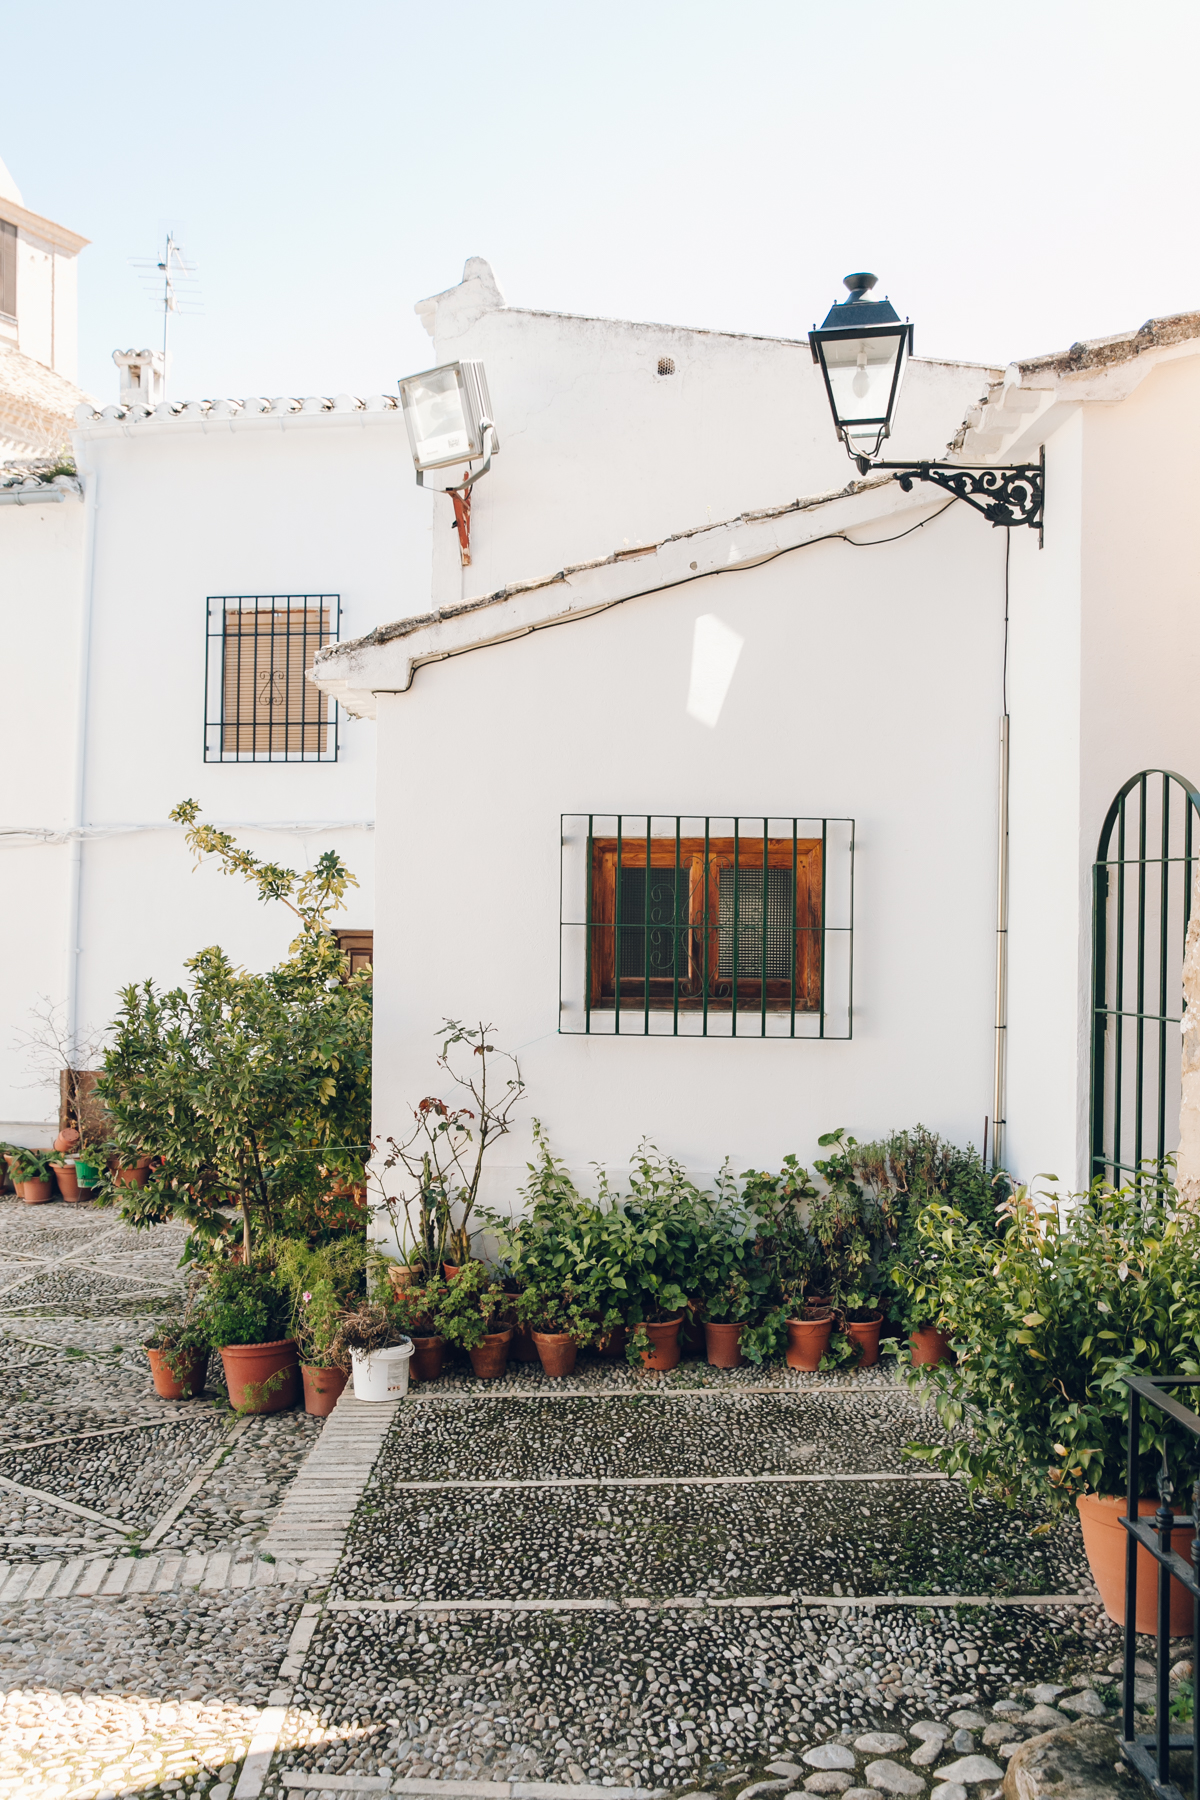 Plant-filled patios in Andalusia, Spain.